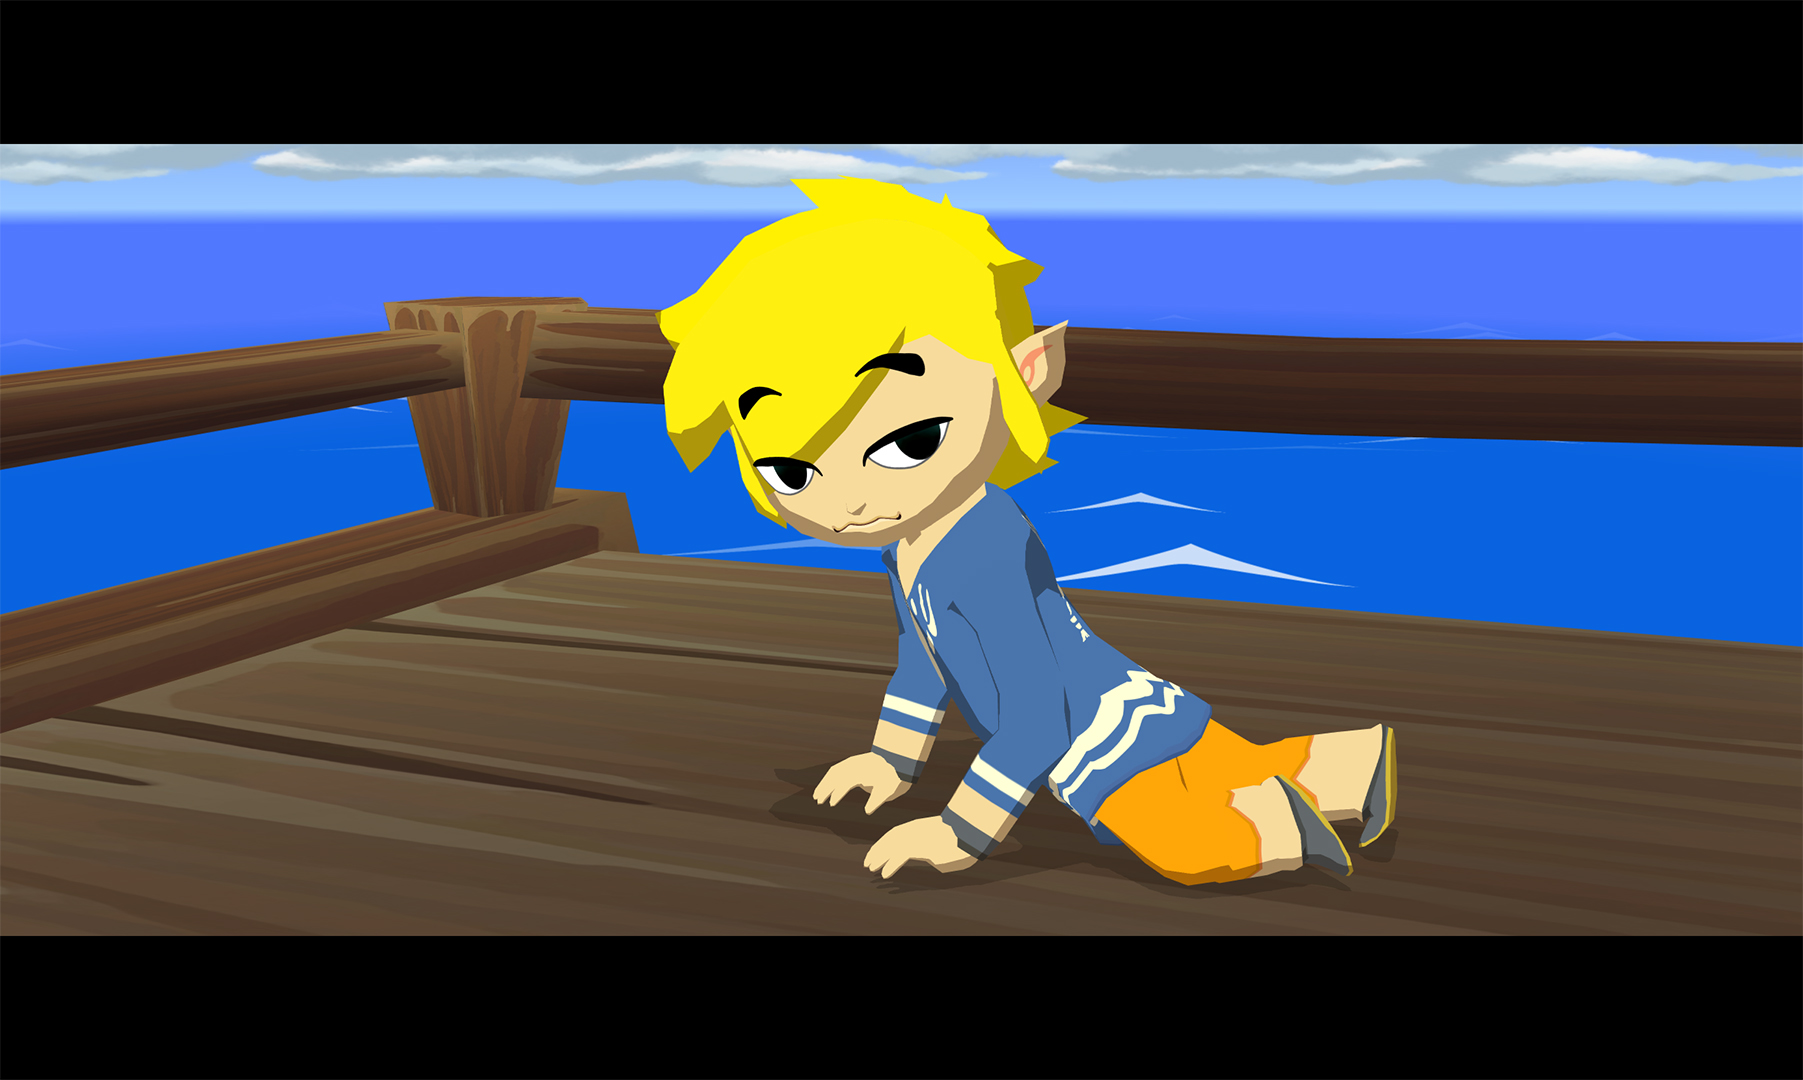 Dolphin 5 0 (Wii and GameCube emulator) released! | NeoGAF